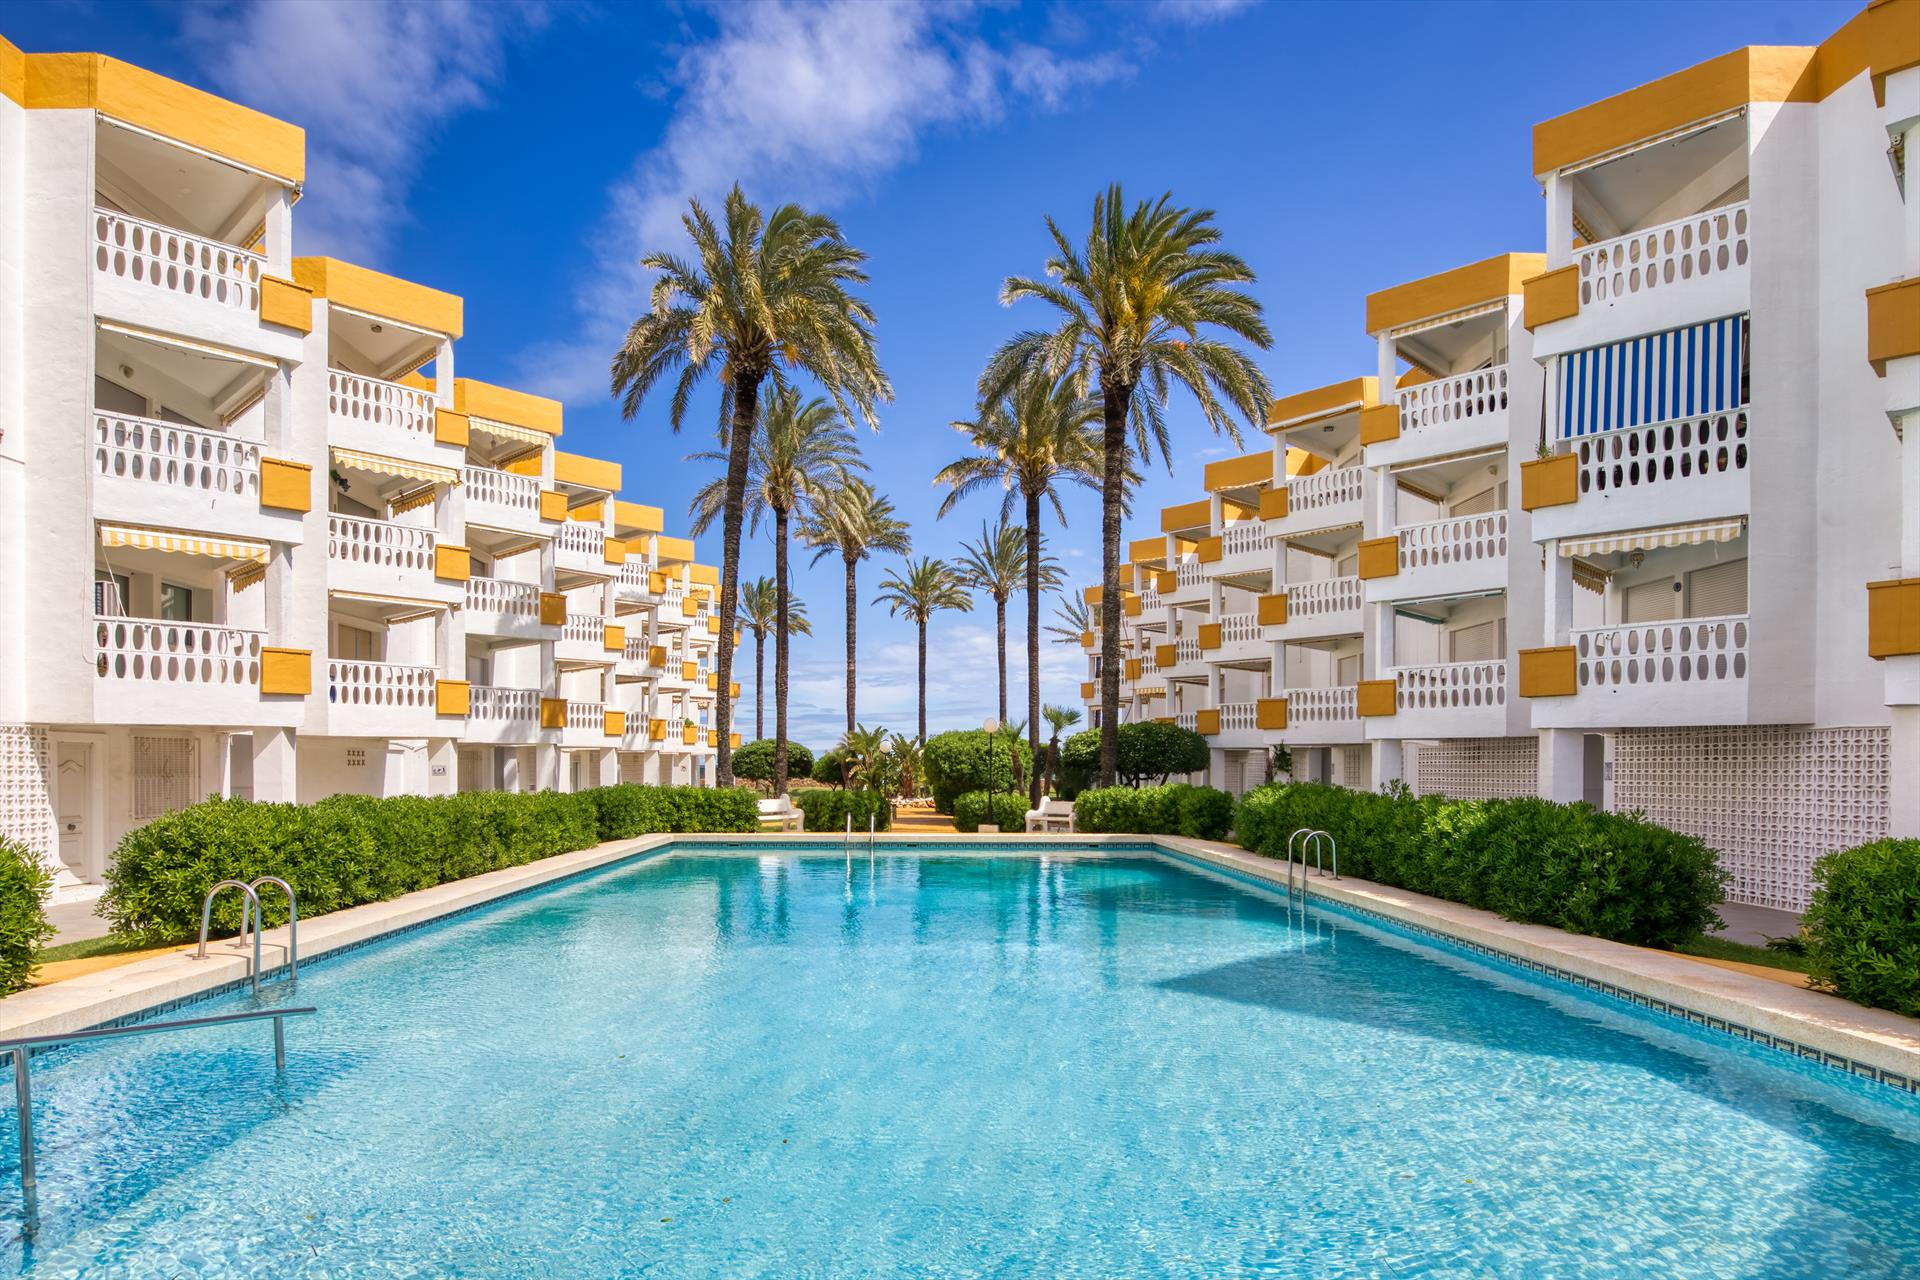 Holiday Beach, Apartment  with communal pool in Denia, on the Costa Blanca, Spain for 4 persons.....